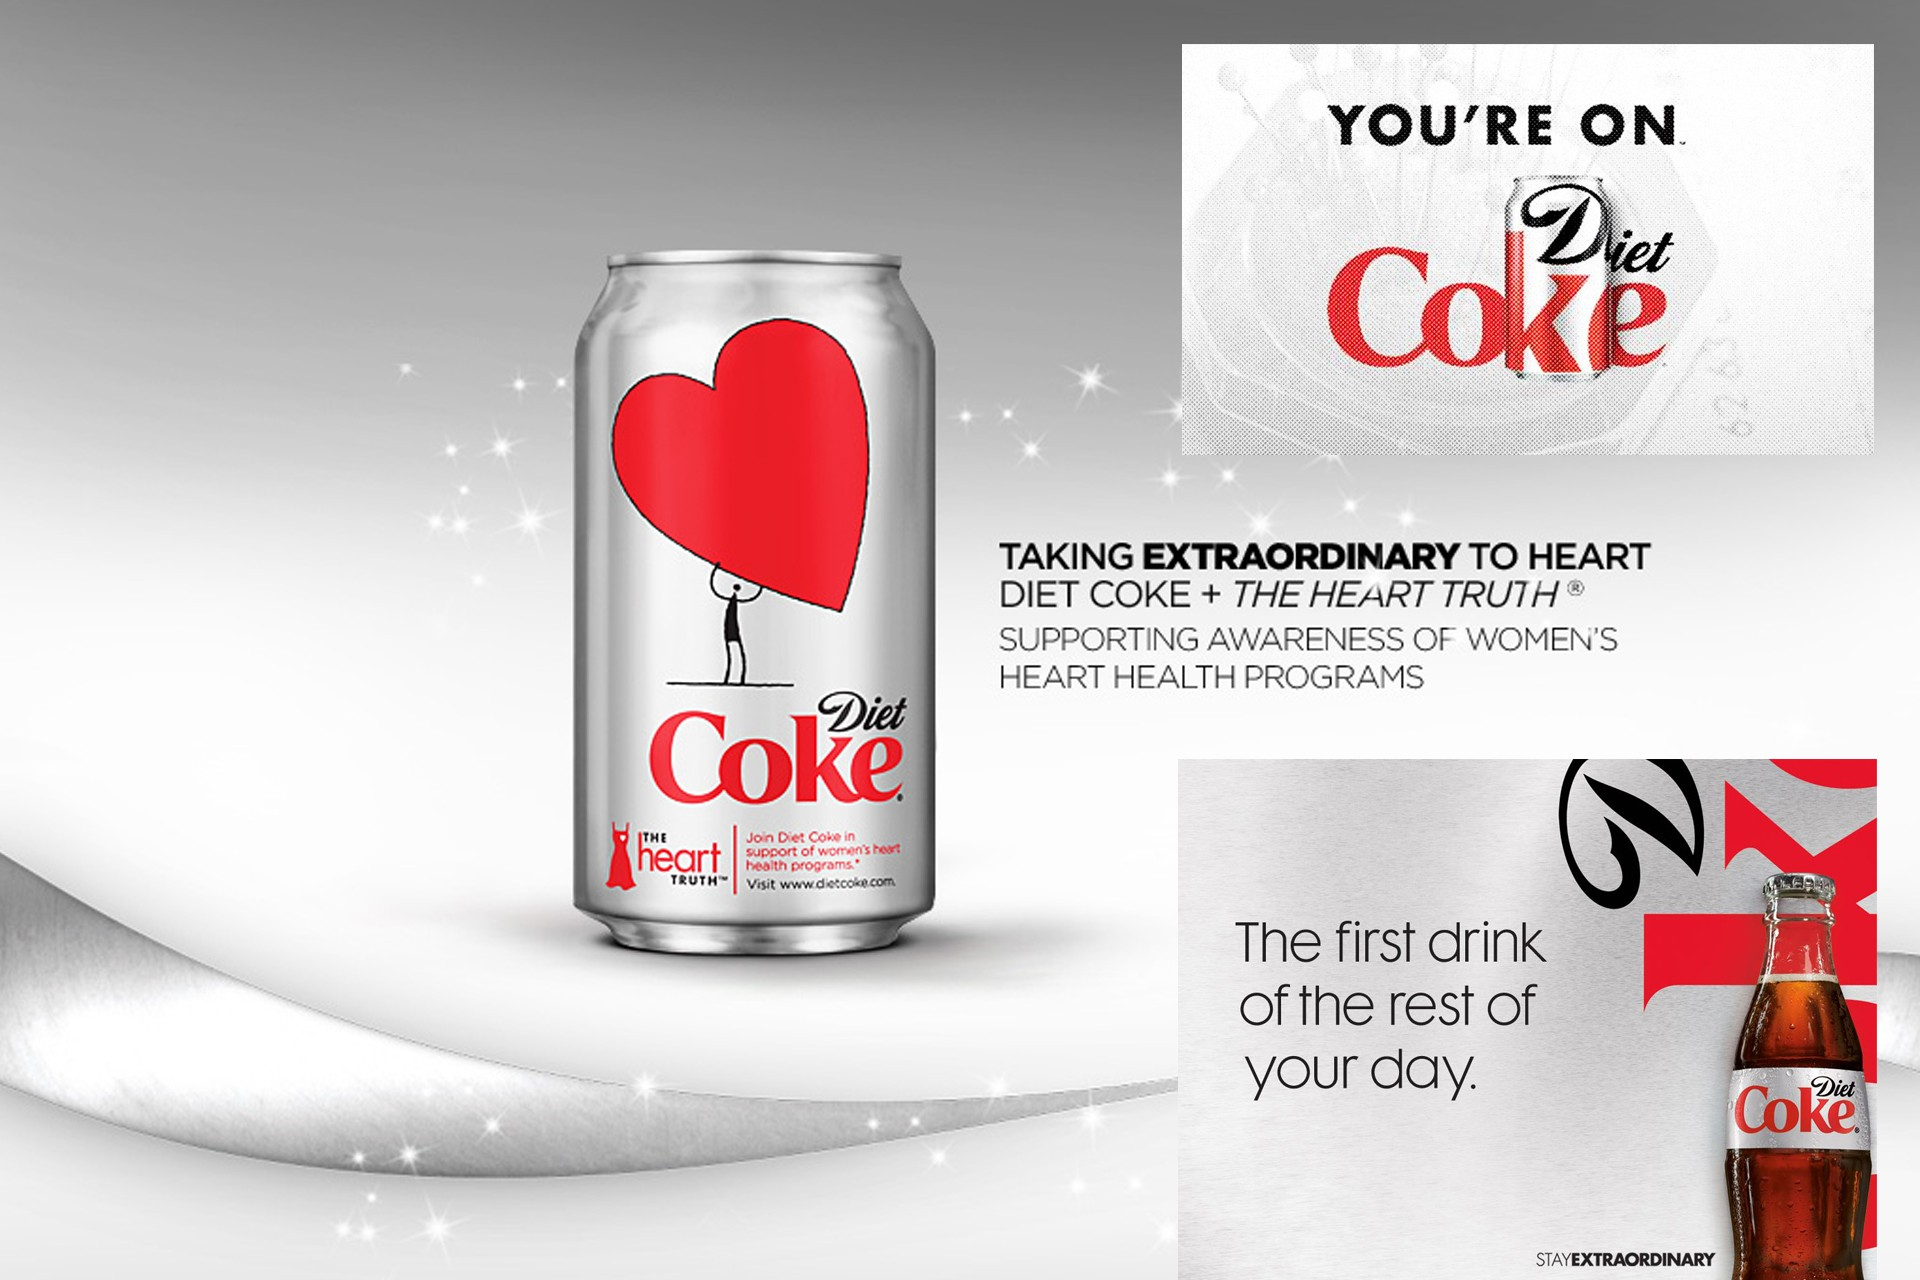 SP diet coke